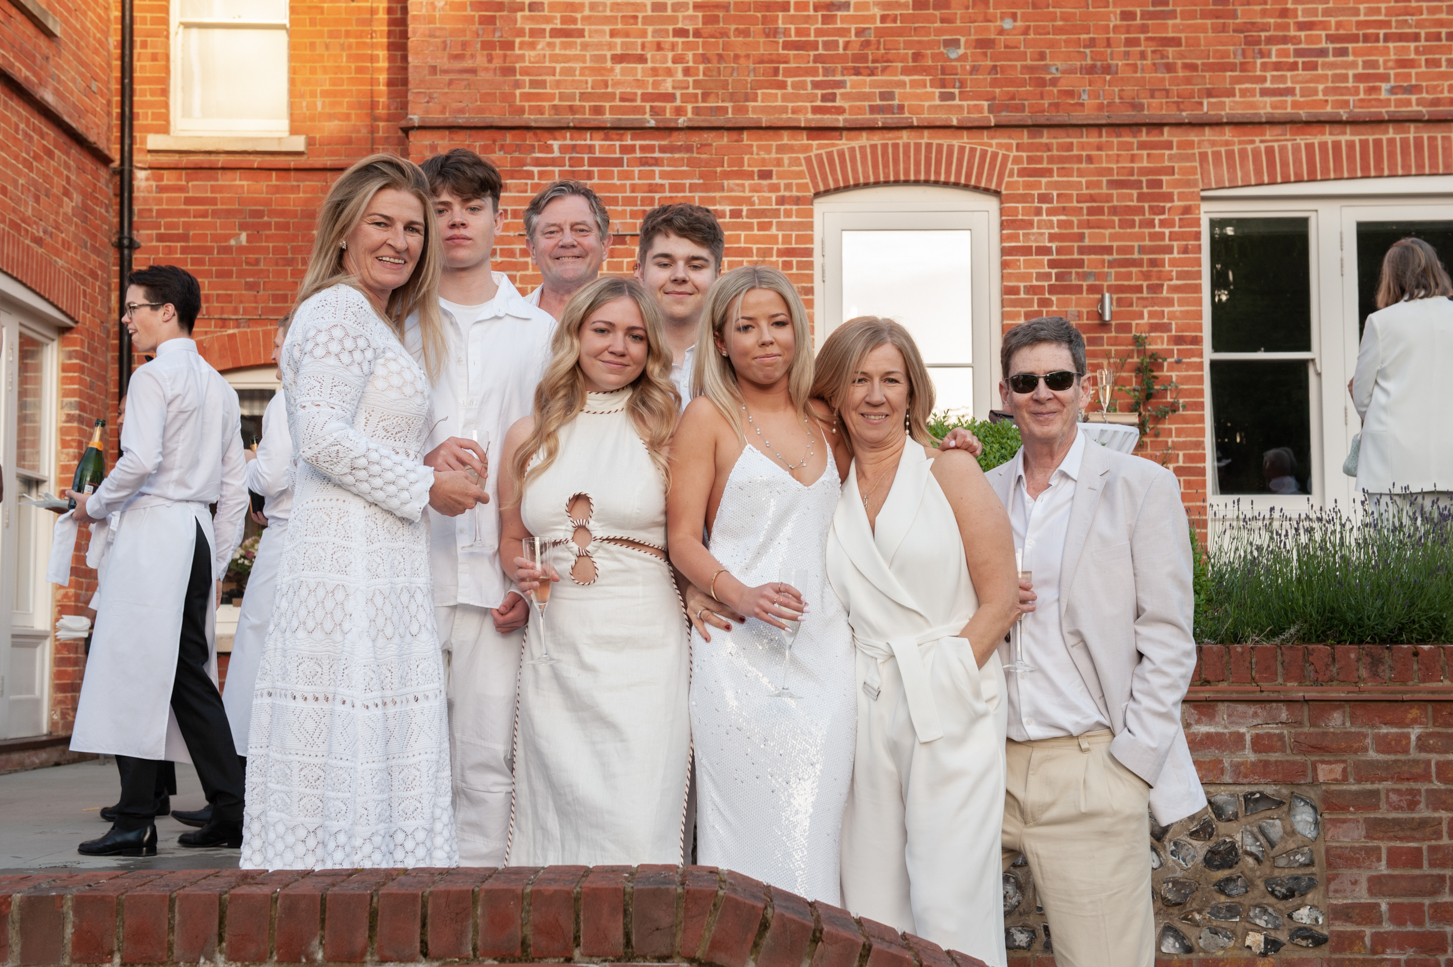 Family event photography by Farnham, Surrey based photographer James Muller